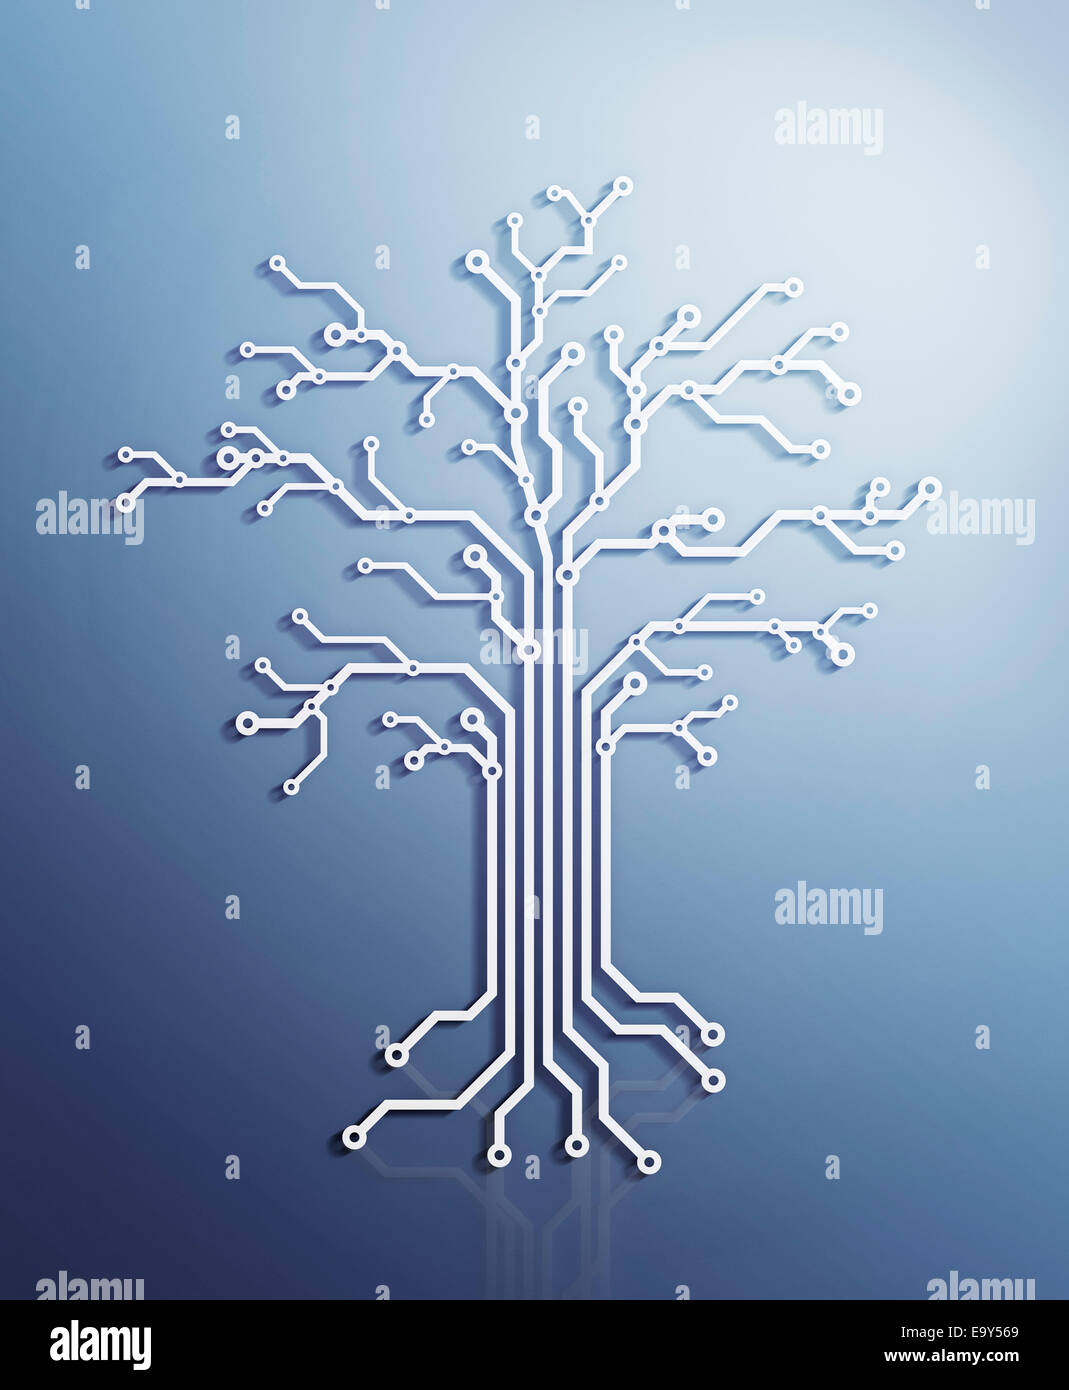 Digital tree made of electronic circuits, conceptual illustration on blue background - Stock Image